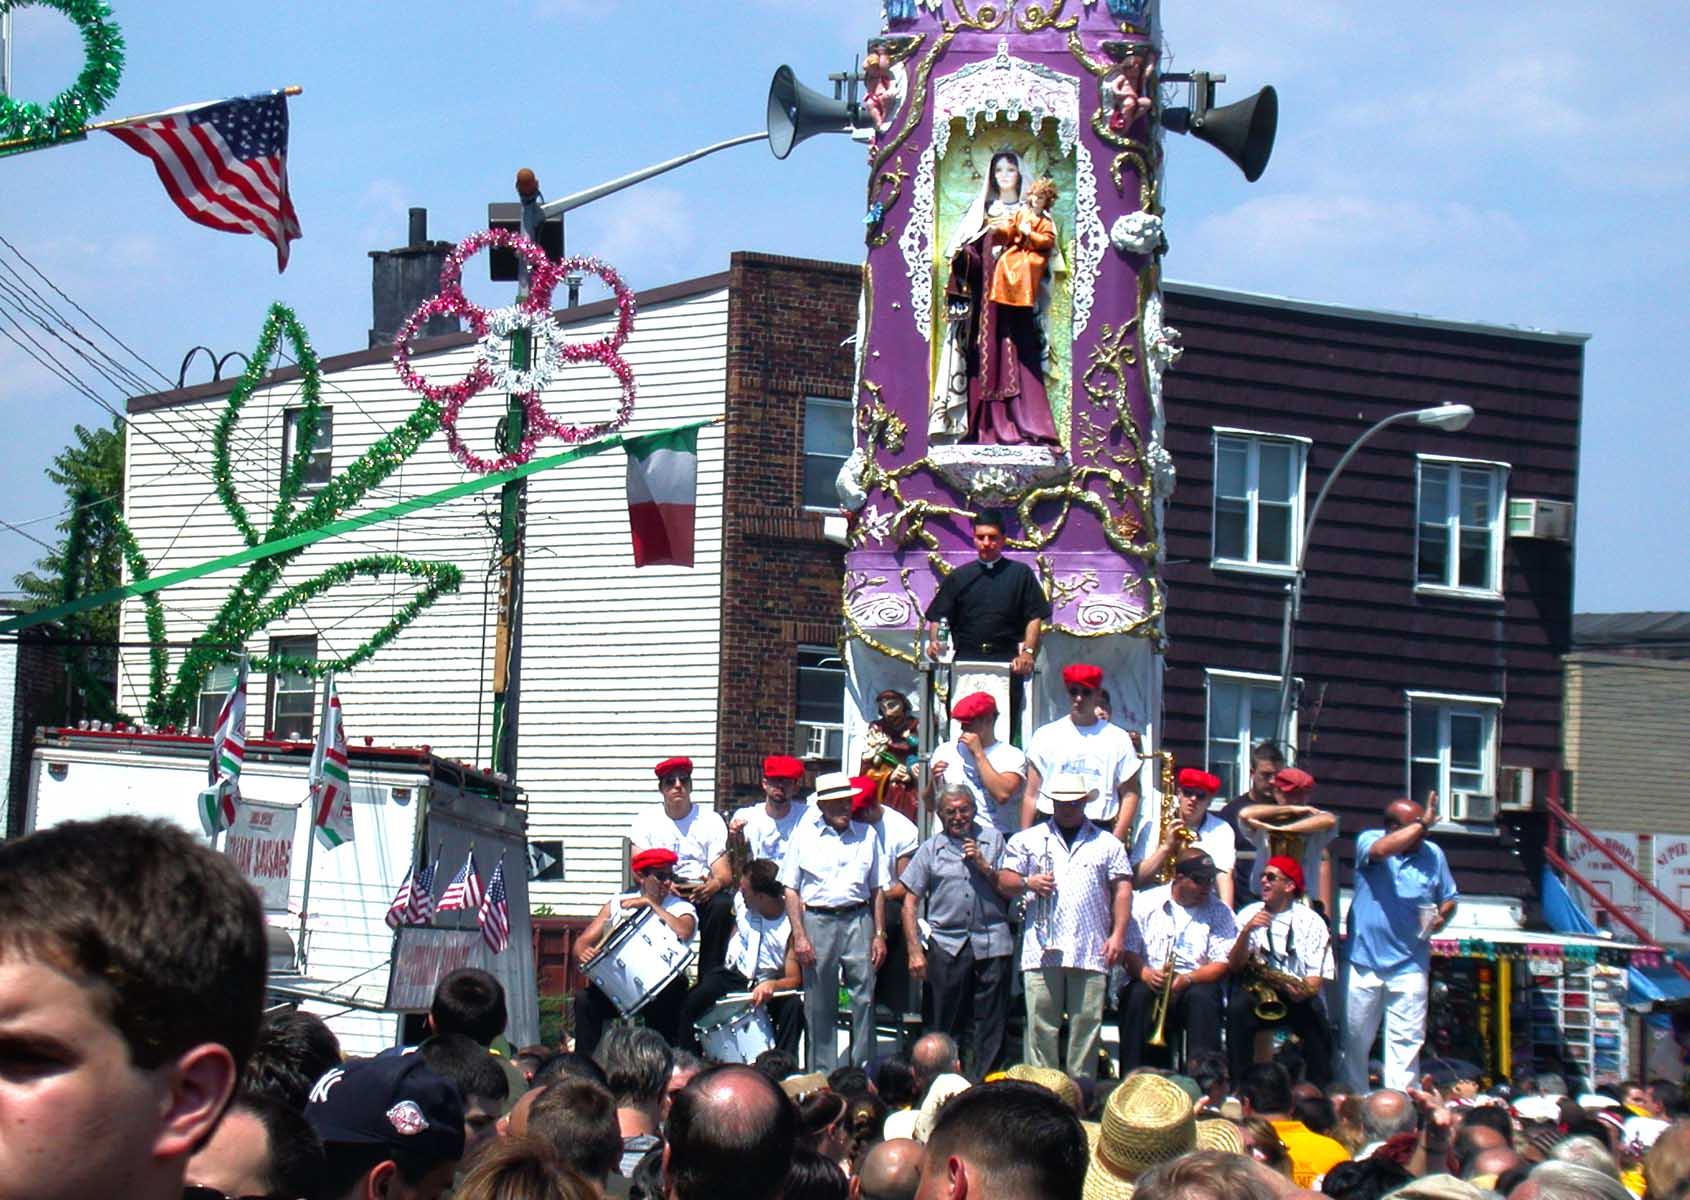 So you think you can dance the Giglio in Williamsburg? Watch